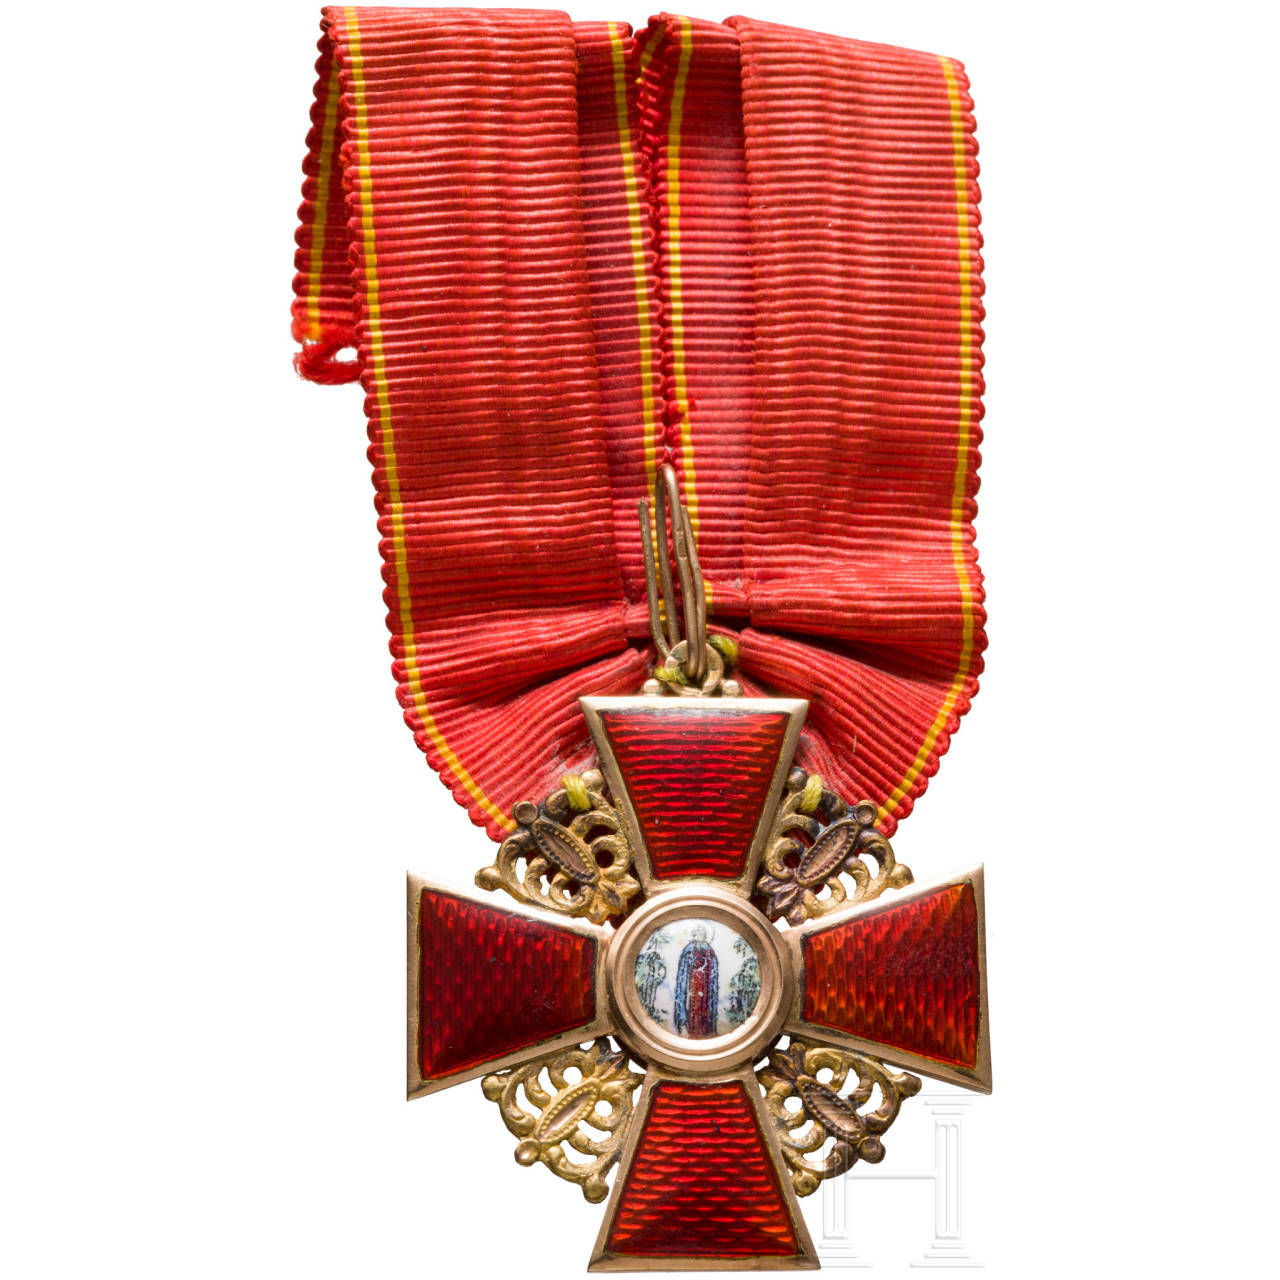 Order of St. Anne - 3rd class cross, circa 1910